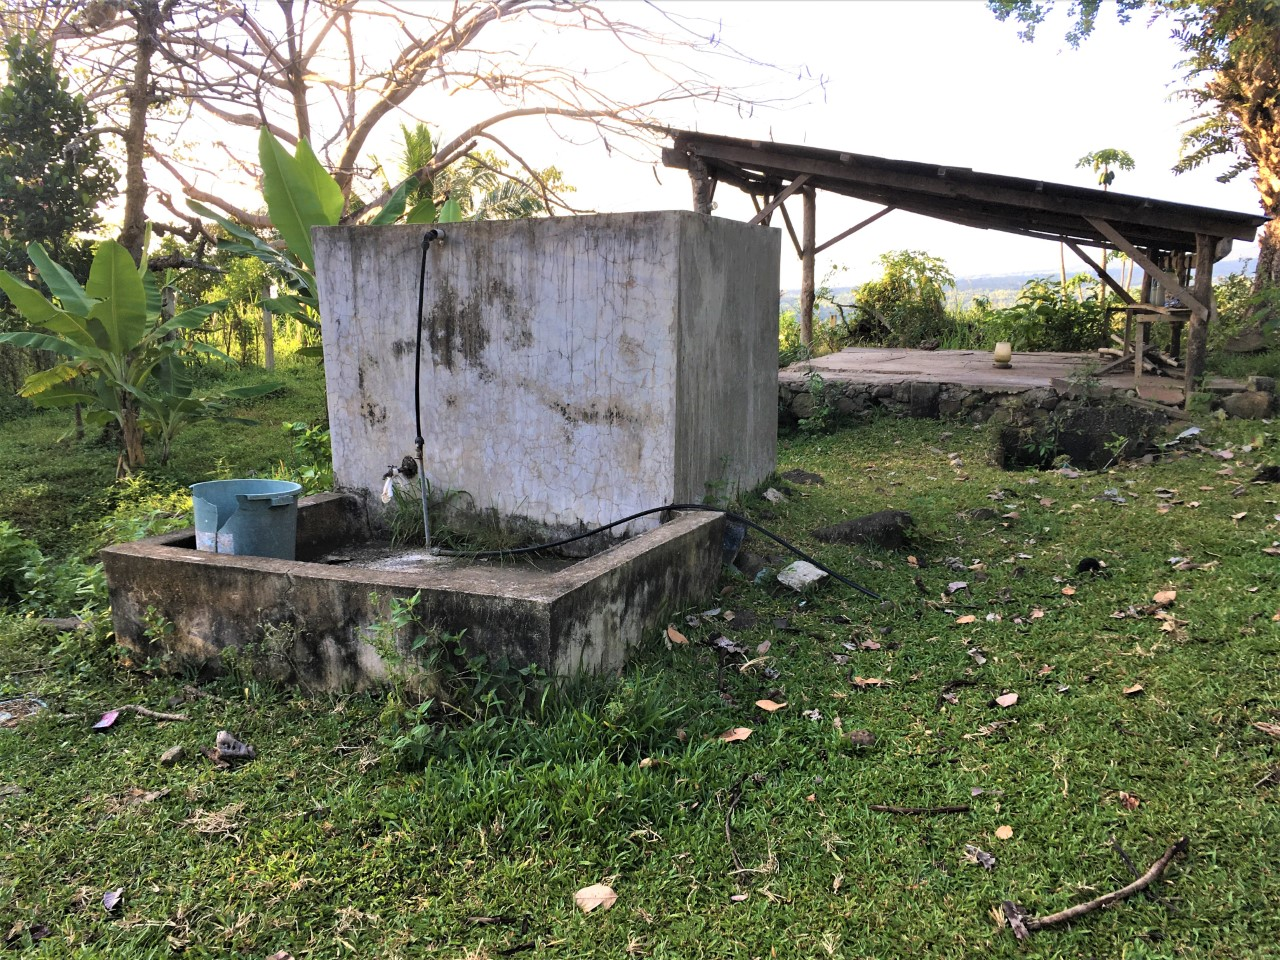 A common cement water box that fills with rainwater serving the community of Balili, Negros Oriental. (Photos all by permission of subjects and photographer: Cobbie Palm.)